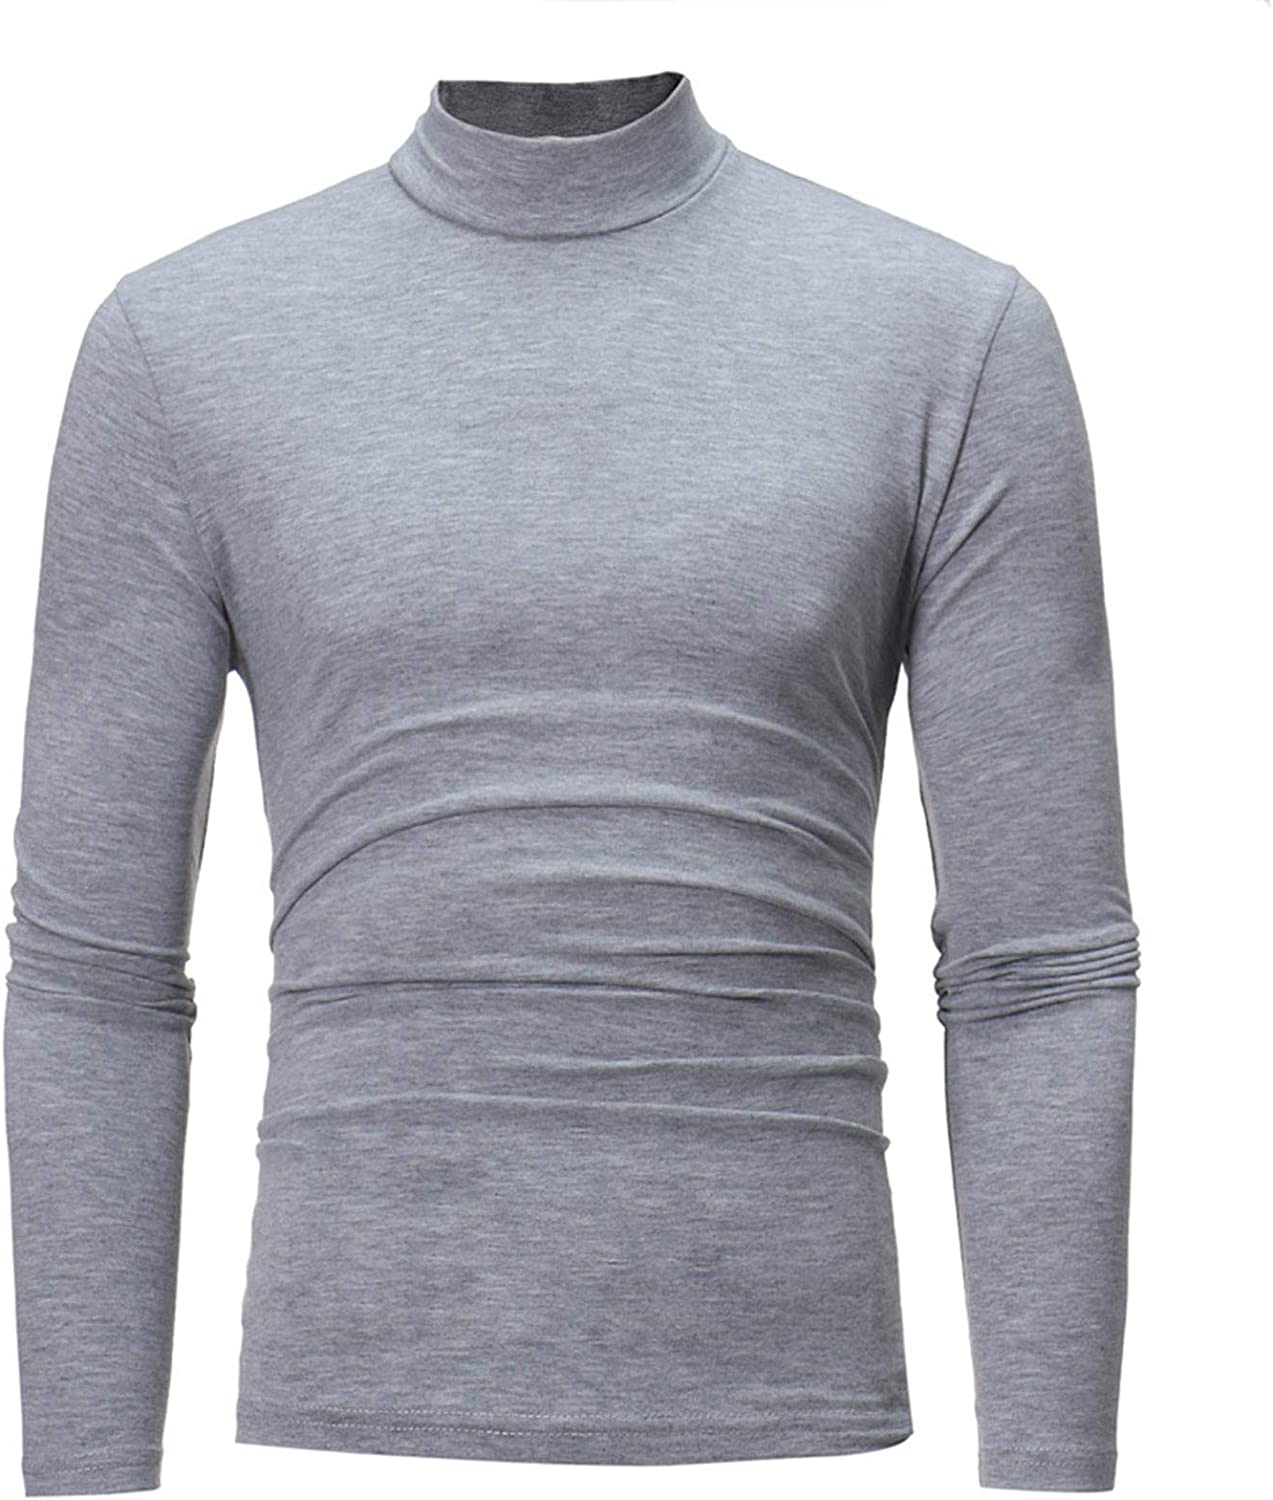 eipogp Men's Mockneck Pullover Shirts Casual Long Sleeve Slim Fit Tee Shirts Base Layer Thermal Tops